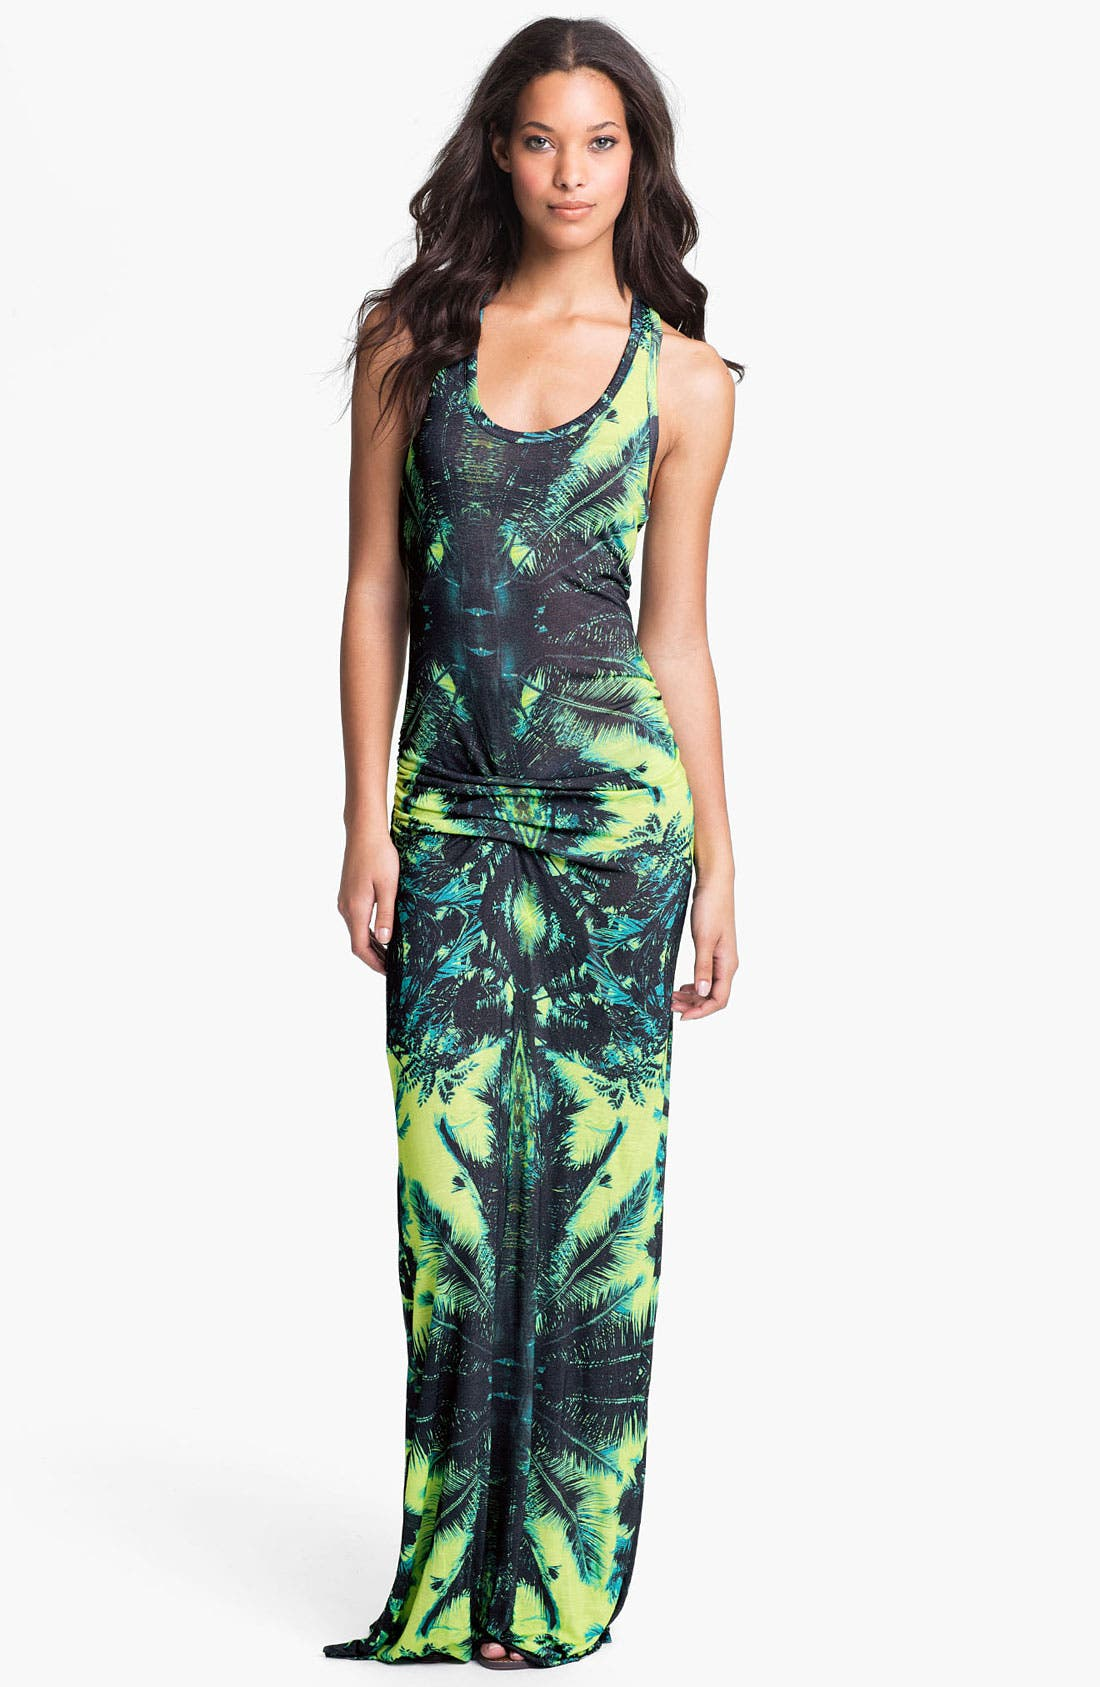 Main Image - Young, Fabulous & Broke 'Hamptons' Print Racerback Maxi Dress